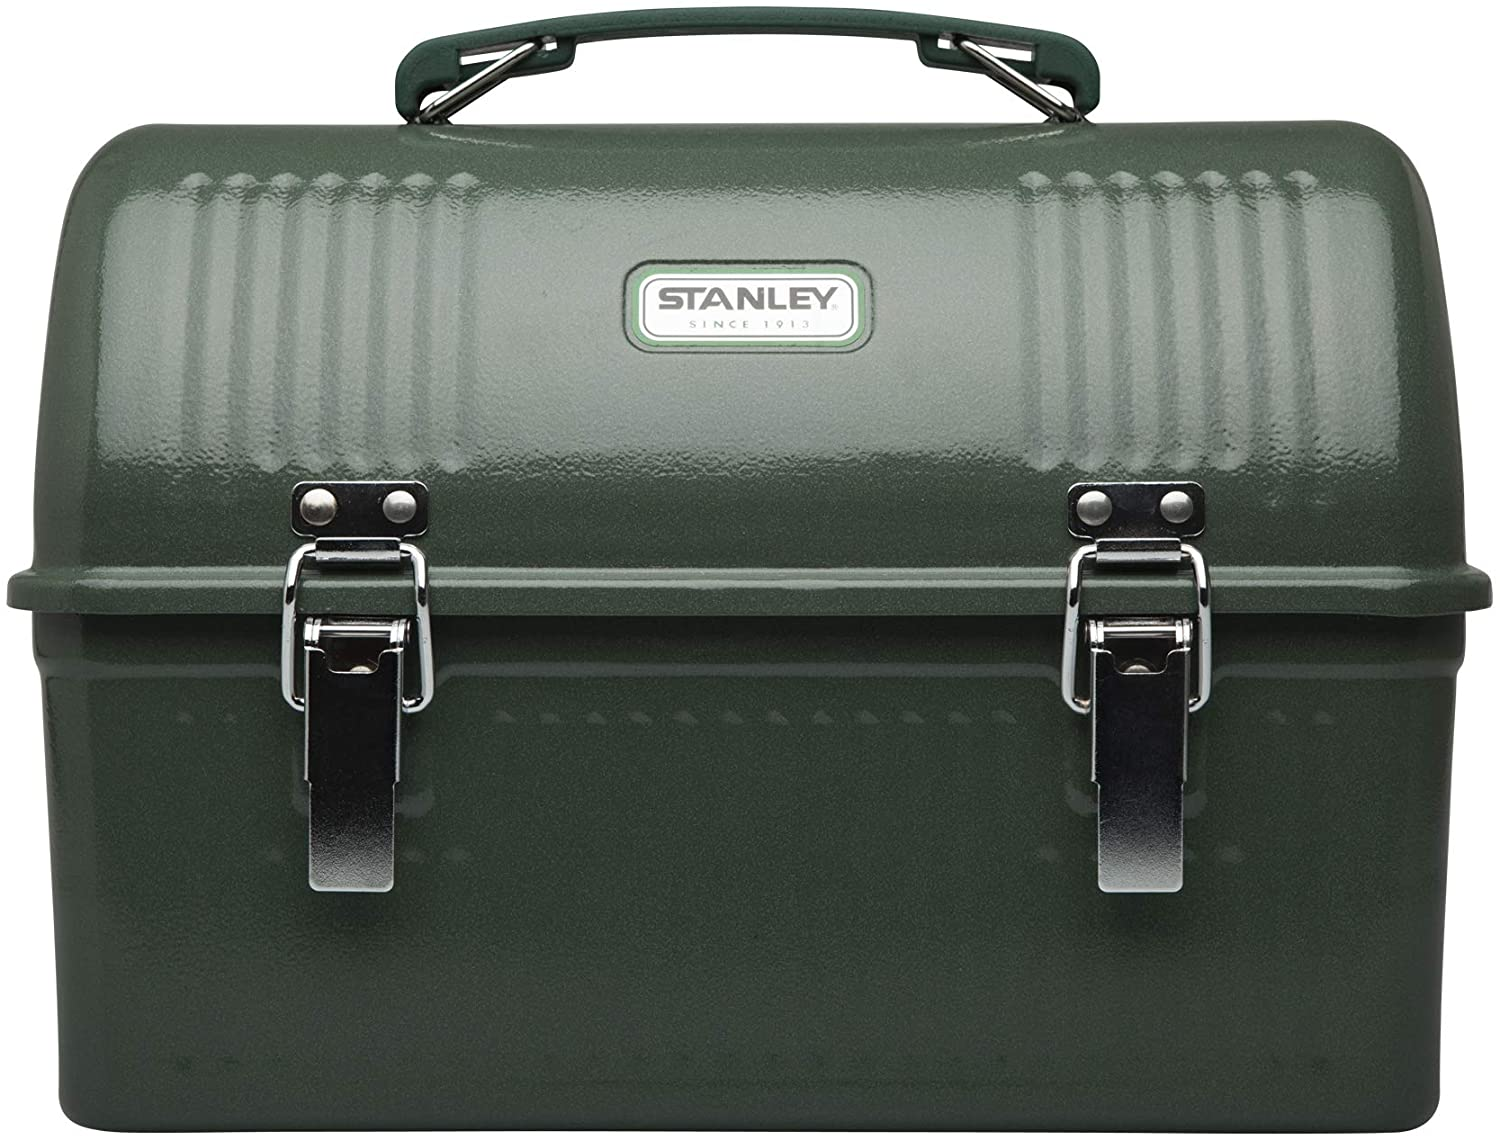 Stanley Credence Classic 10qt Lunch Box – Lunchbox San Francisco Mall Fits Large - Meal